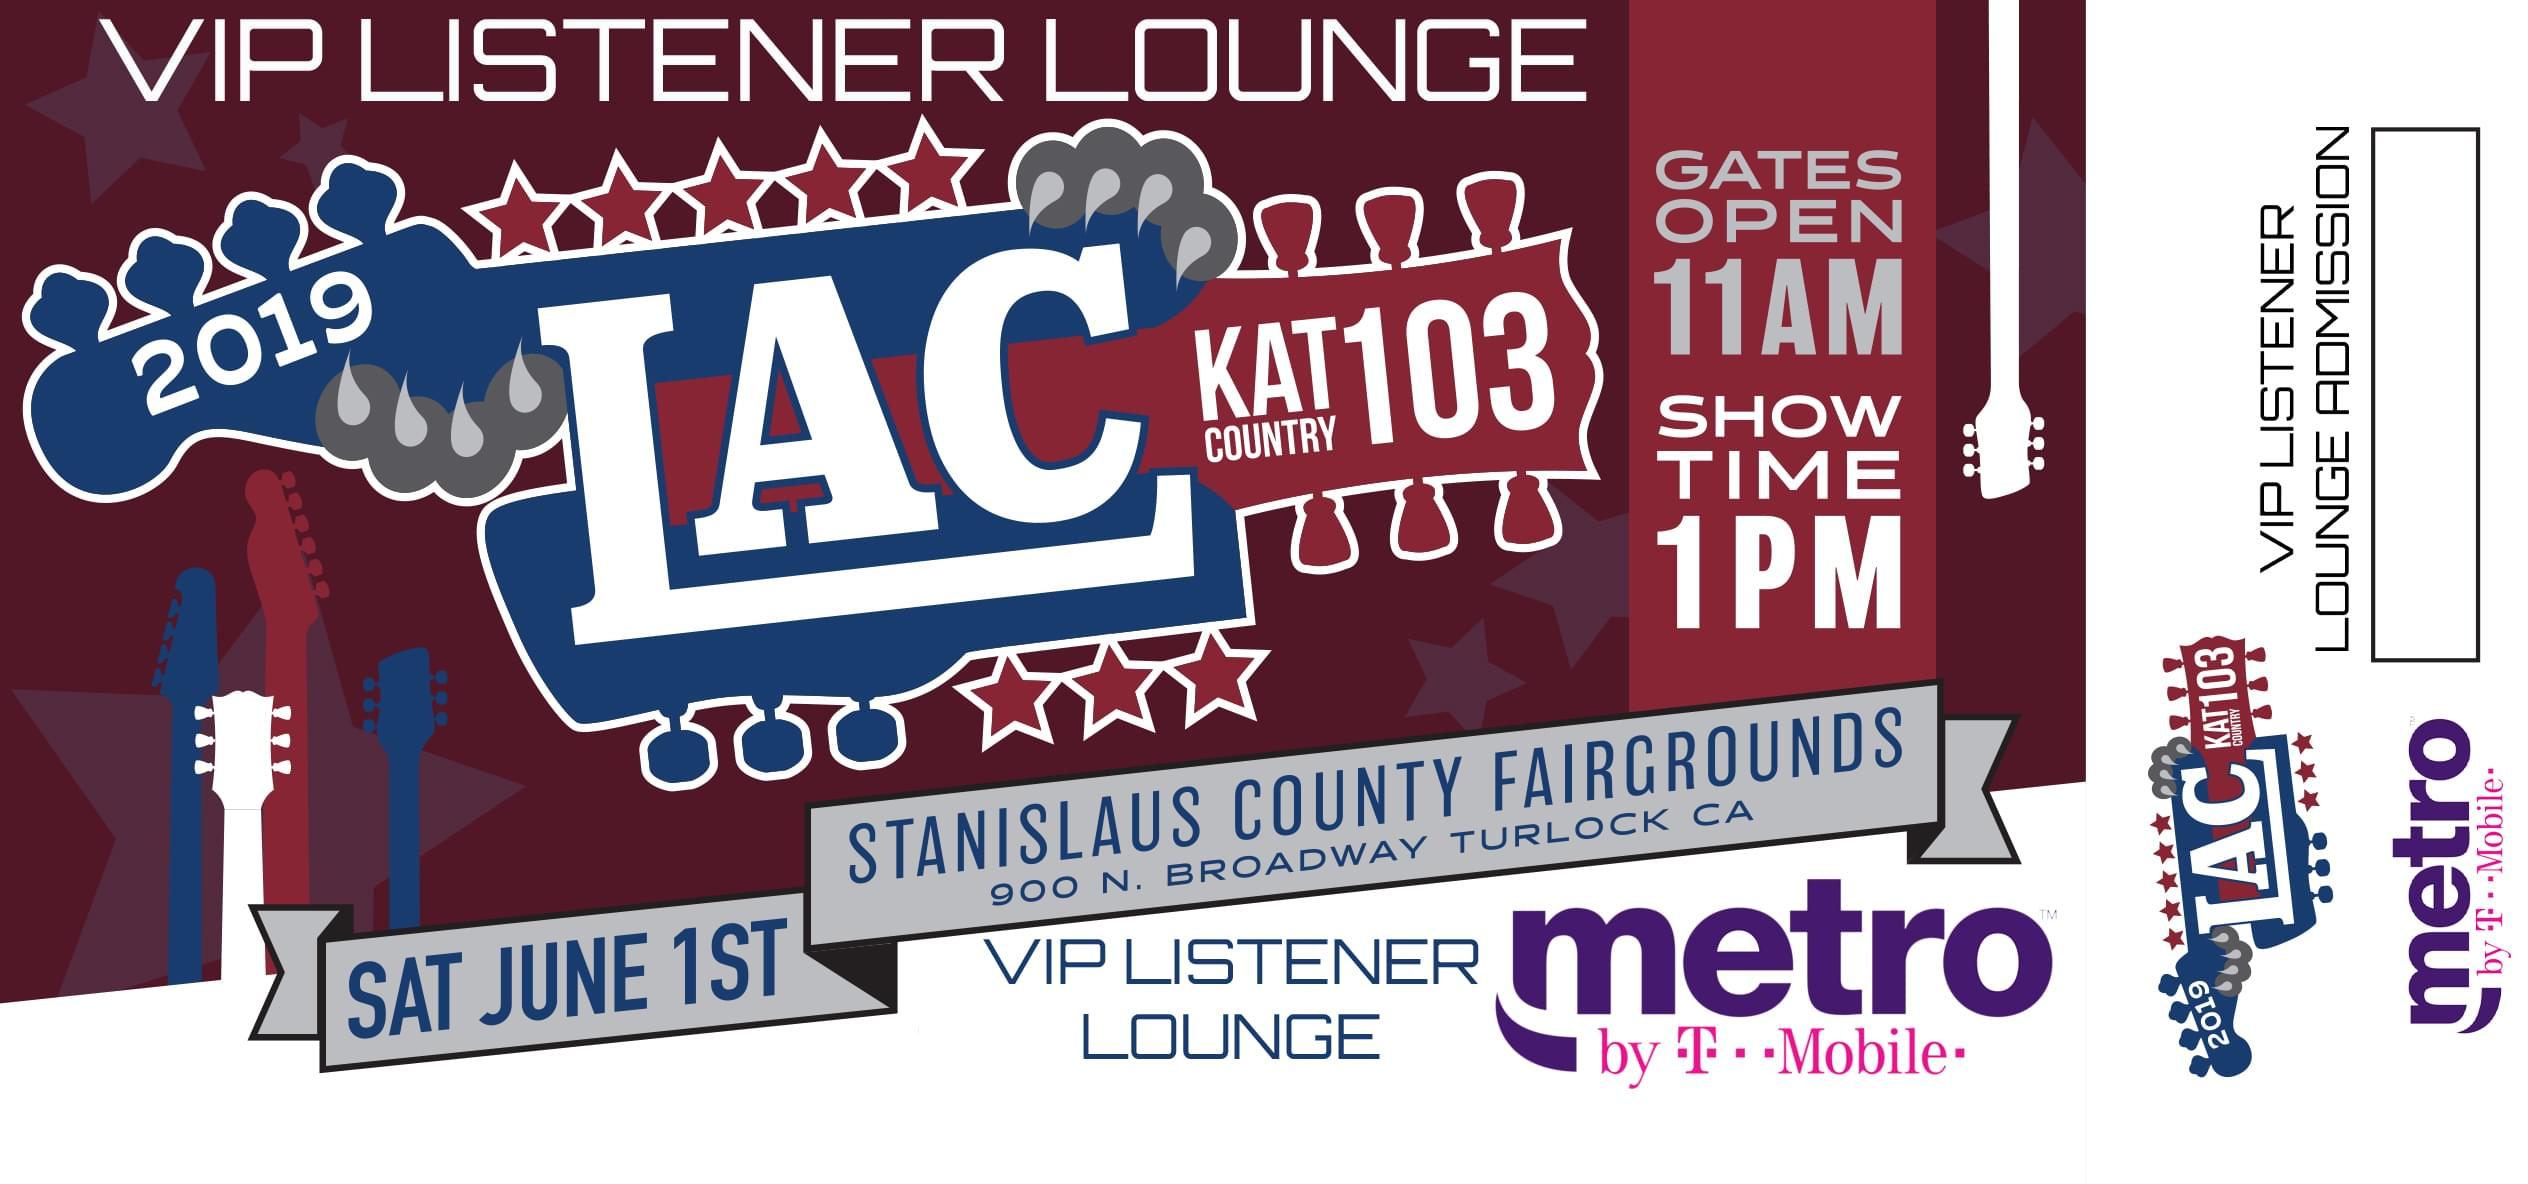 The LAC VIP Listener Lounge on sale @10am!